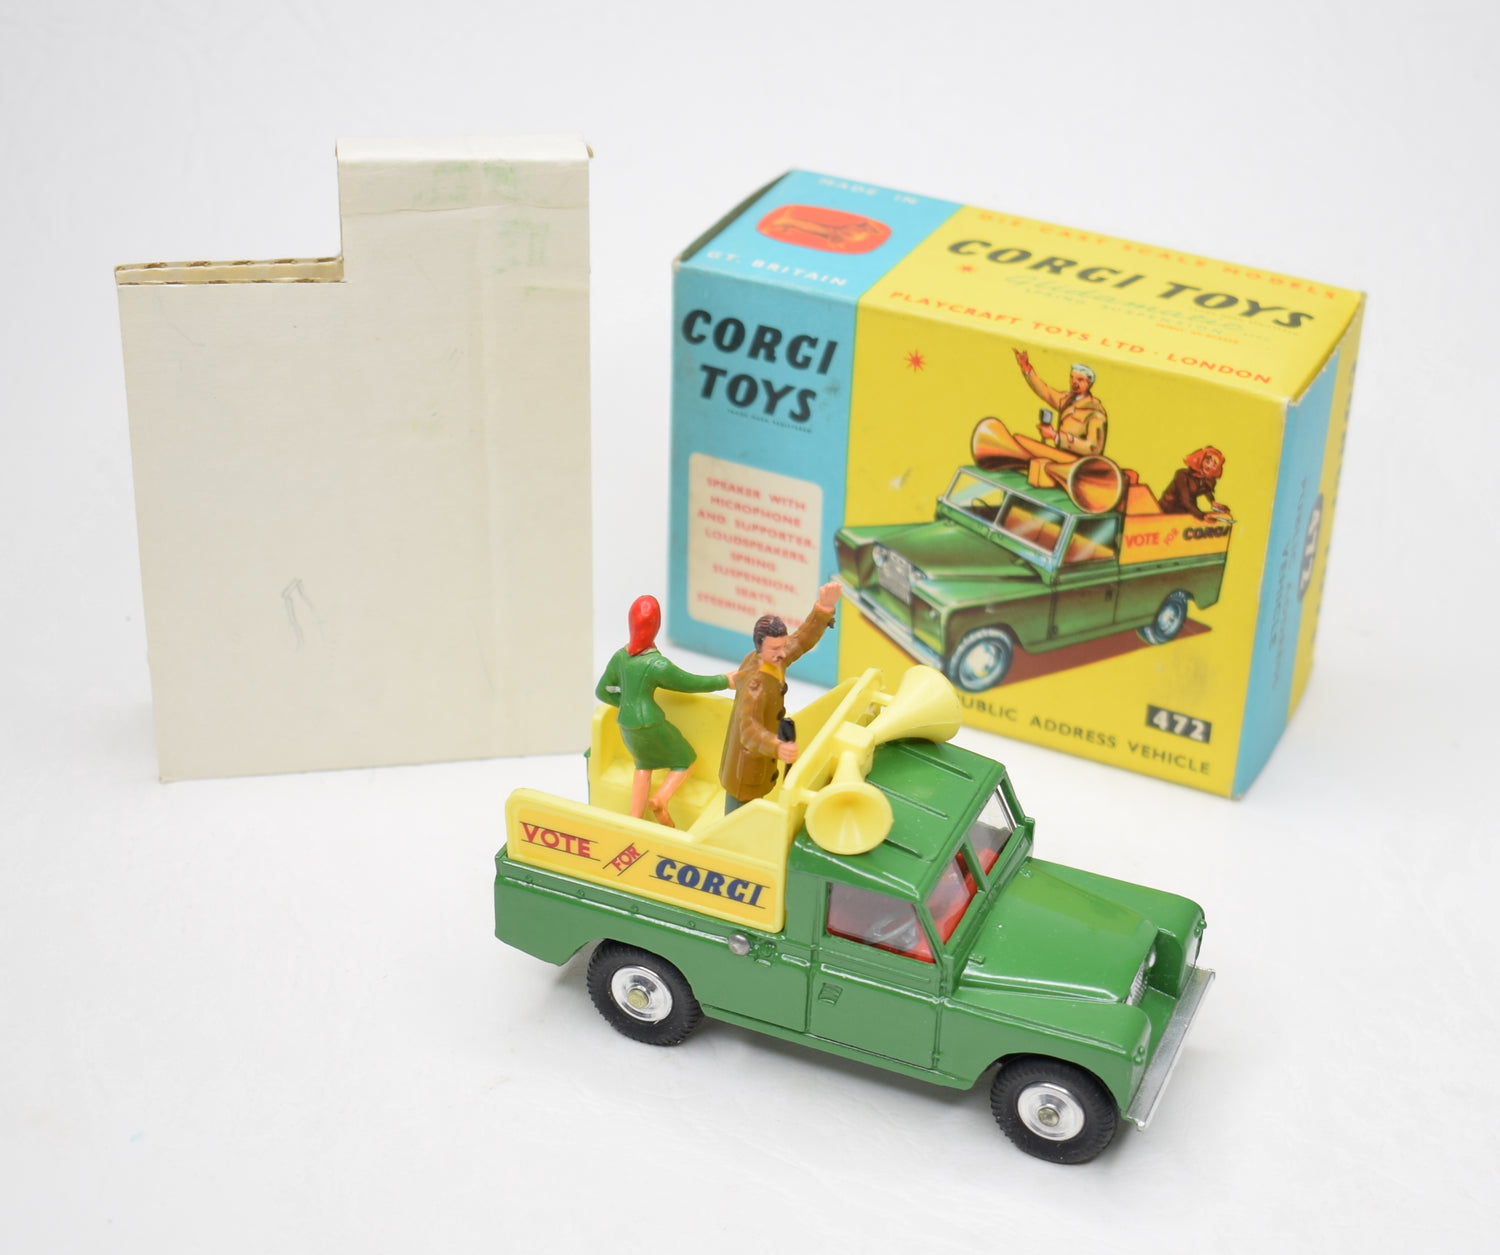 Corgi Toys 472 Public Address Vehicle